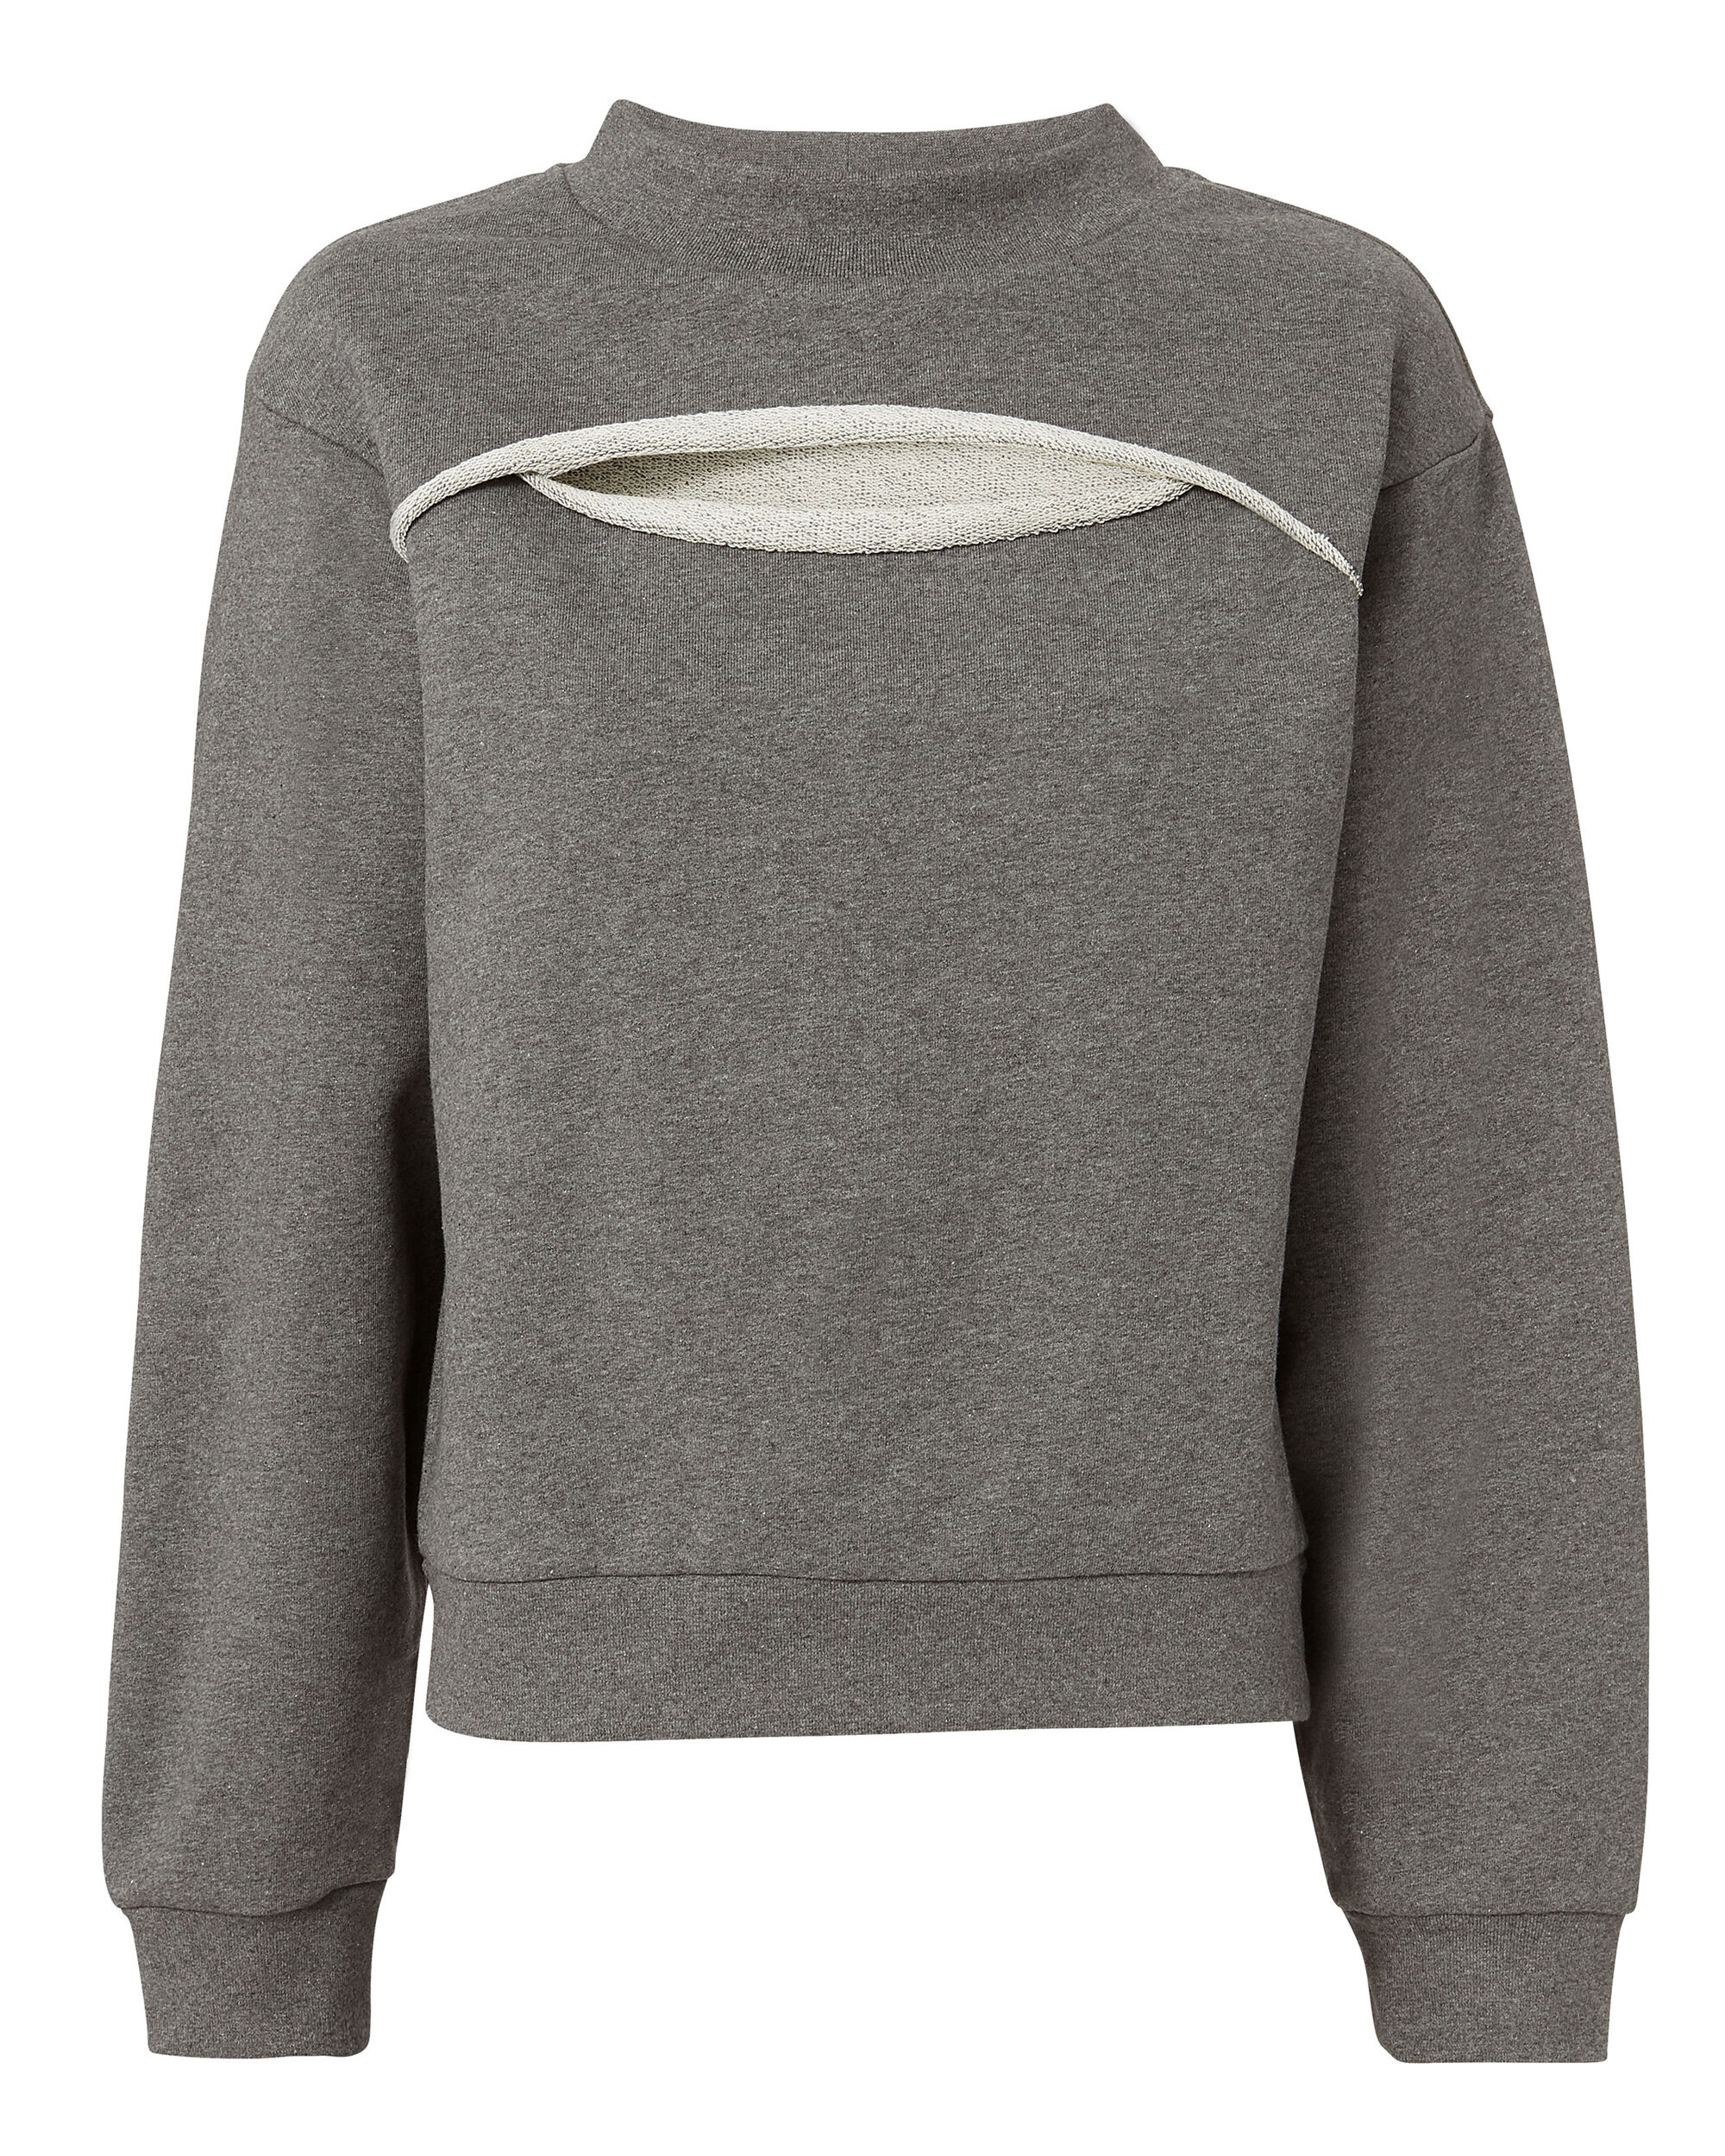 Slit Front Sweatshirt, GREY, hi-res